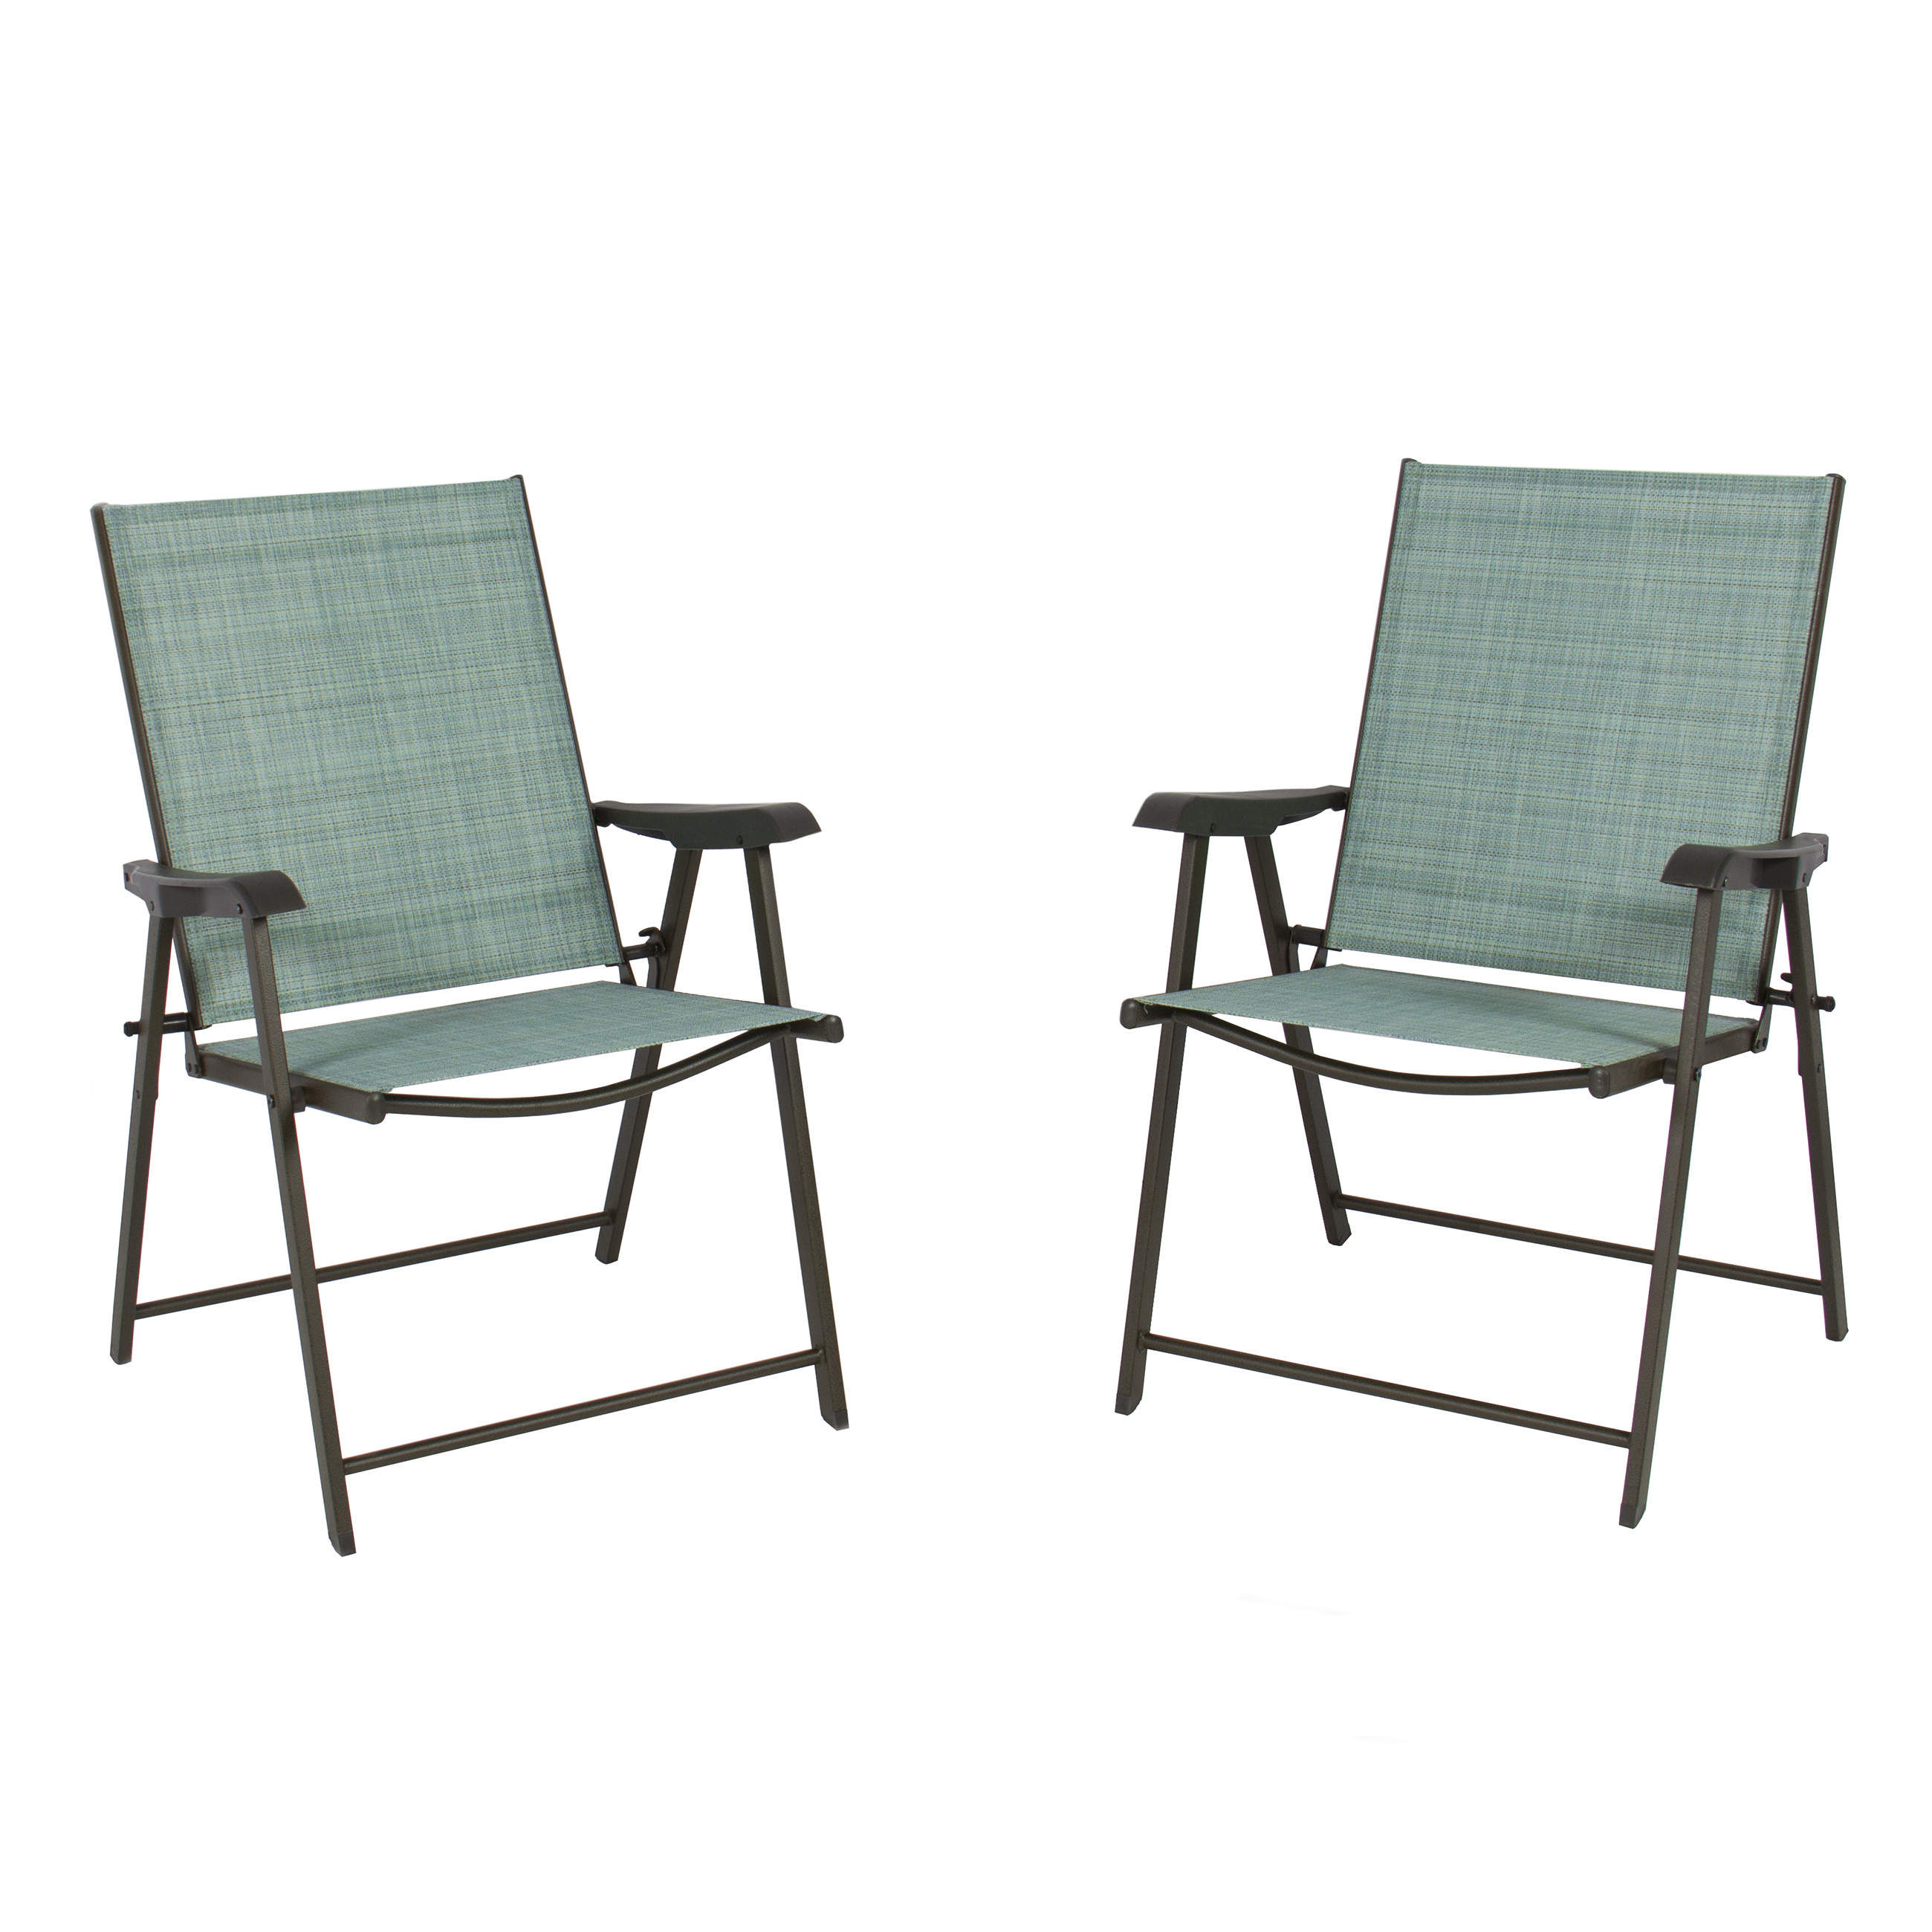 Best ideas about Folding Chairs Outdoor . Save or Pin Set of 2 Folding Chairs Sling Bistro Set Outdoor Patio Now.